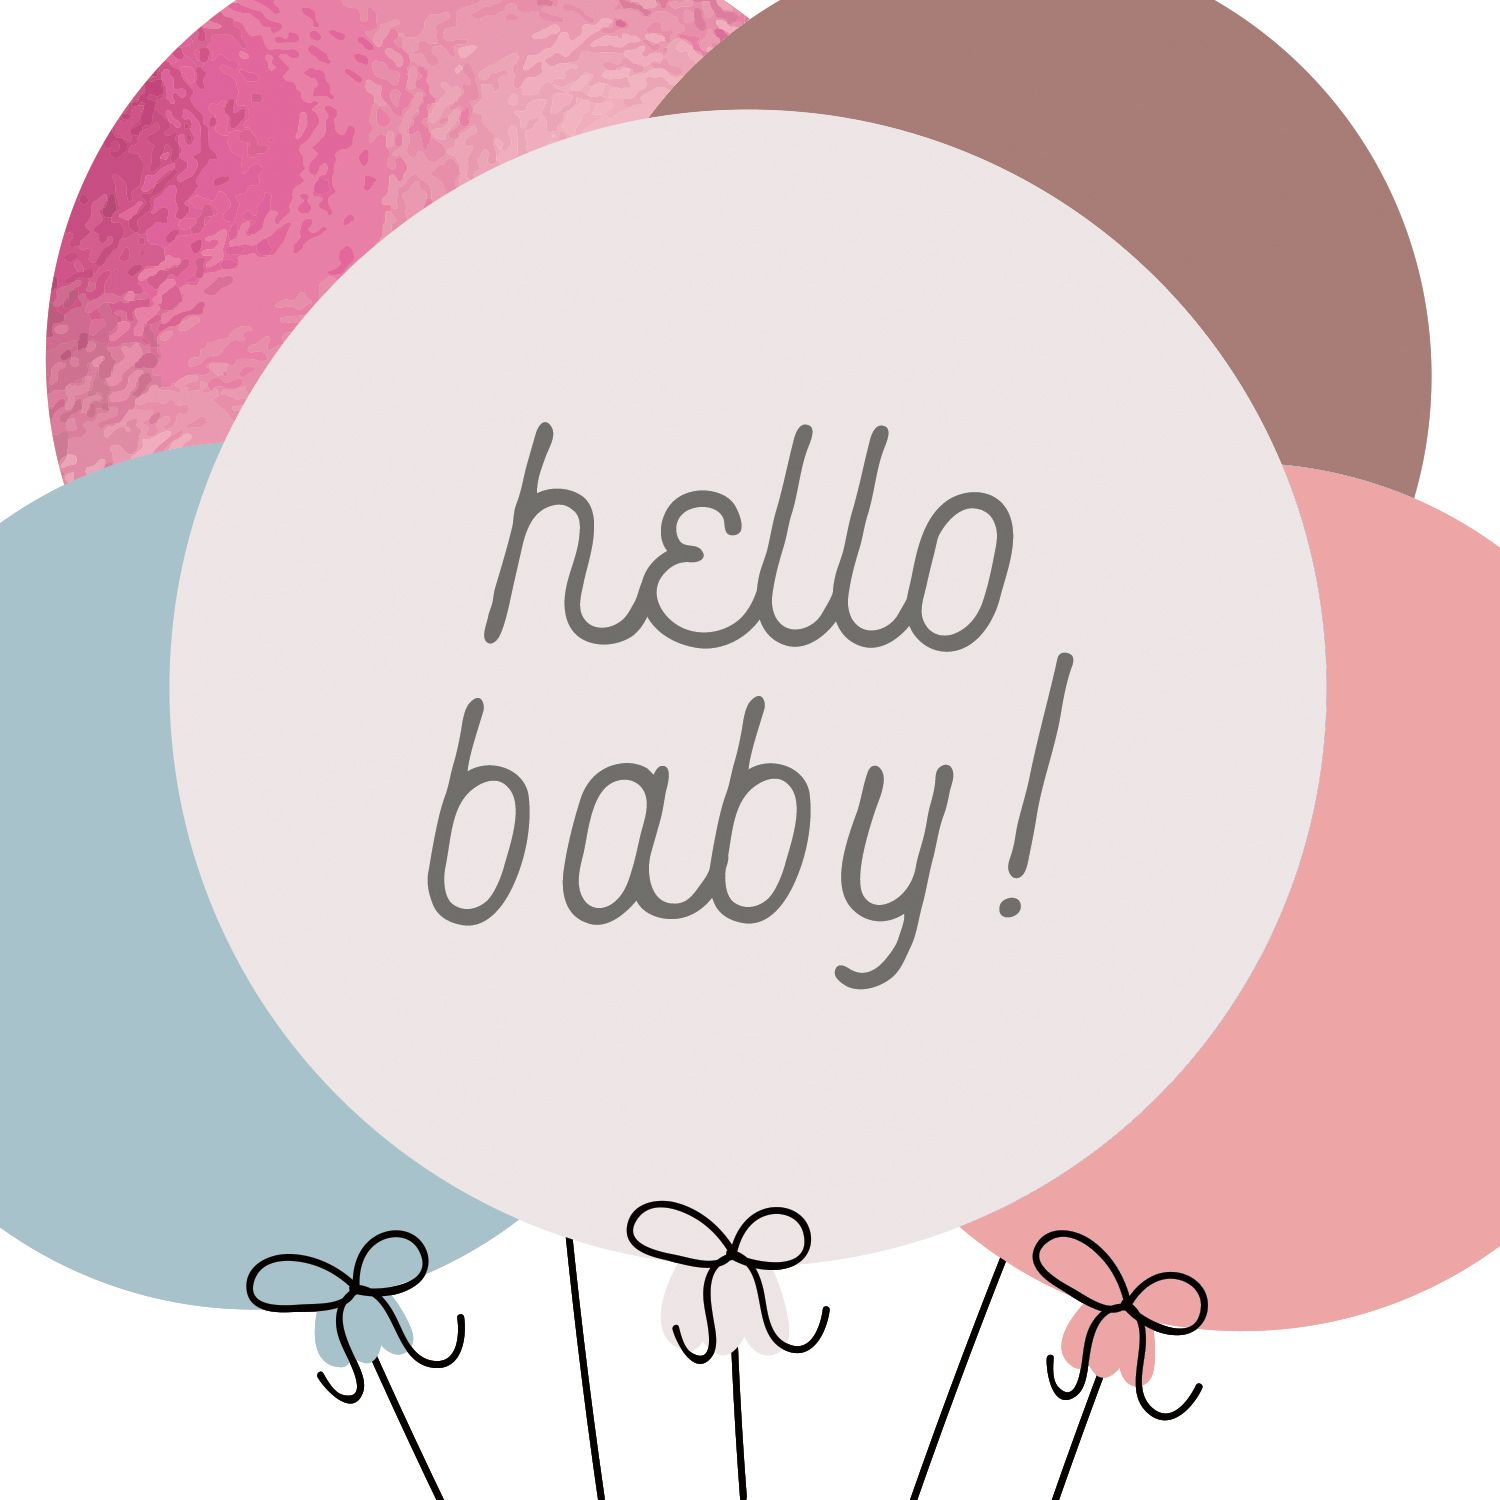 Baby Balloons Congratulations Card Free Greetings Island Free Printable Greeting Cards Printable Cards Congratulations Card